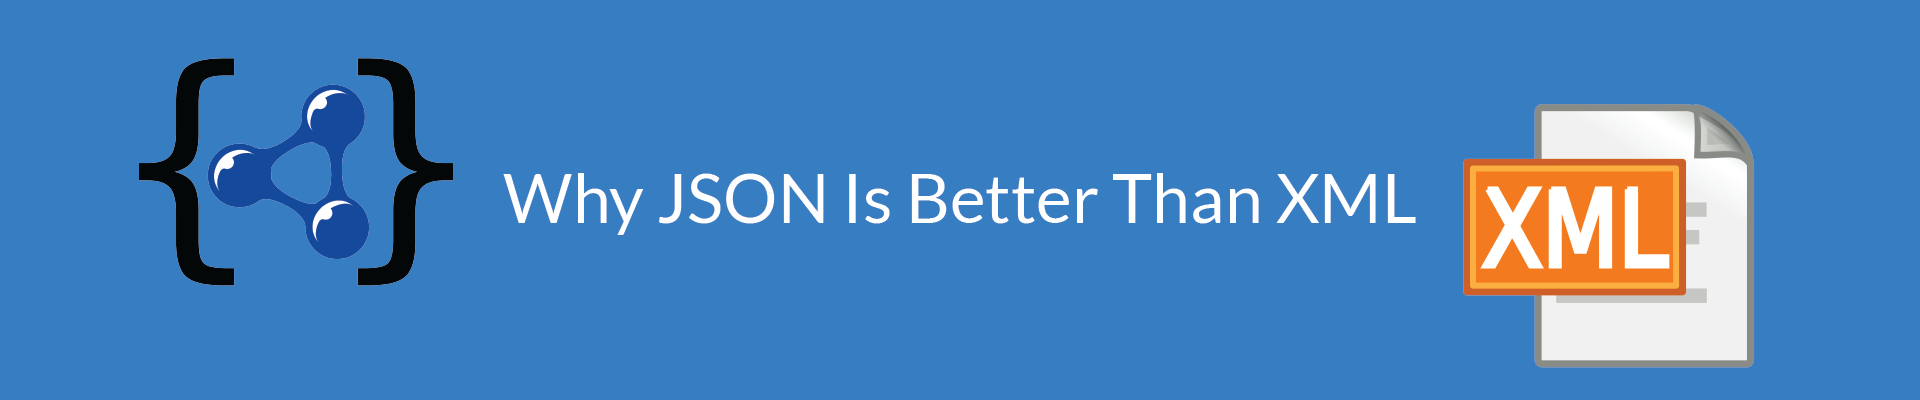 Why JSON is better than XML